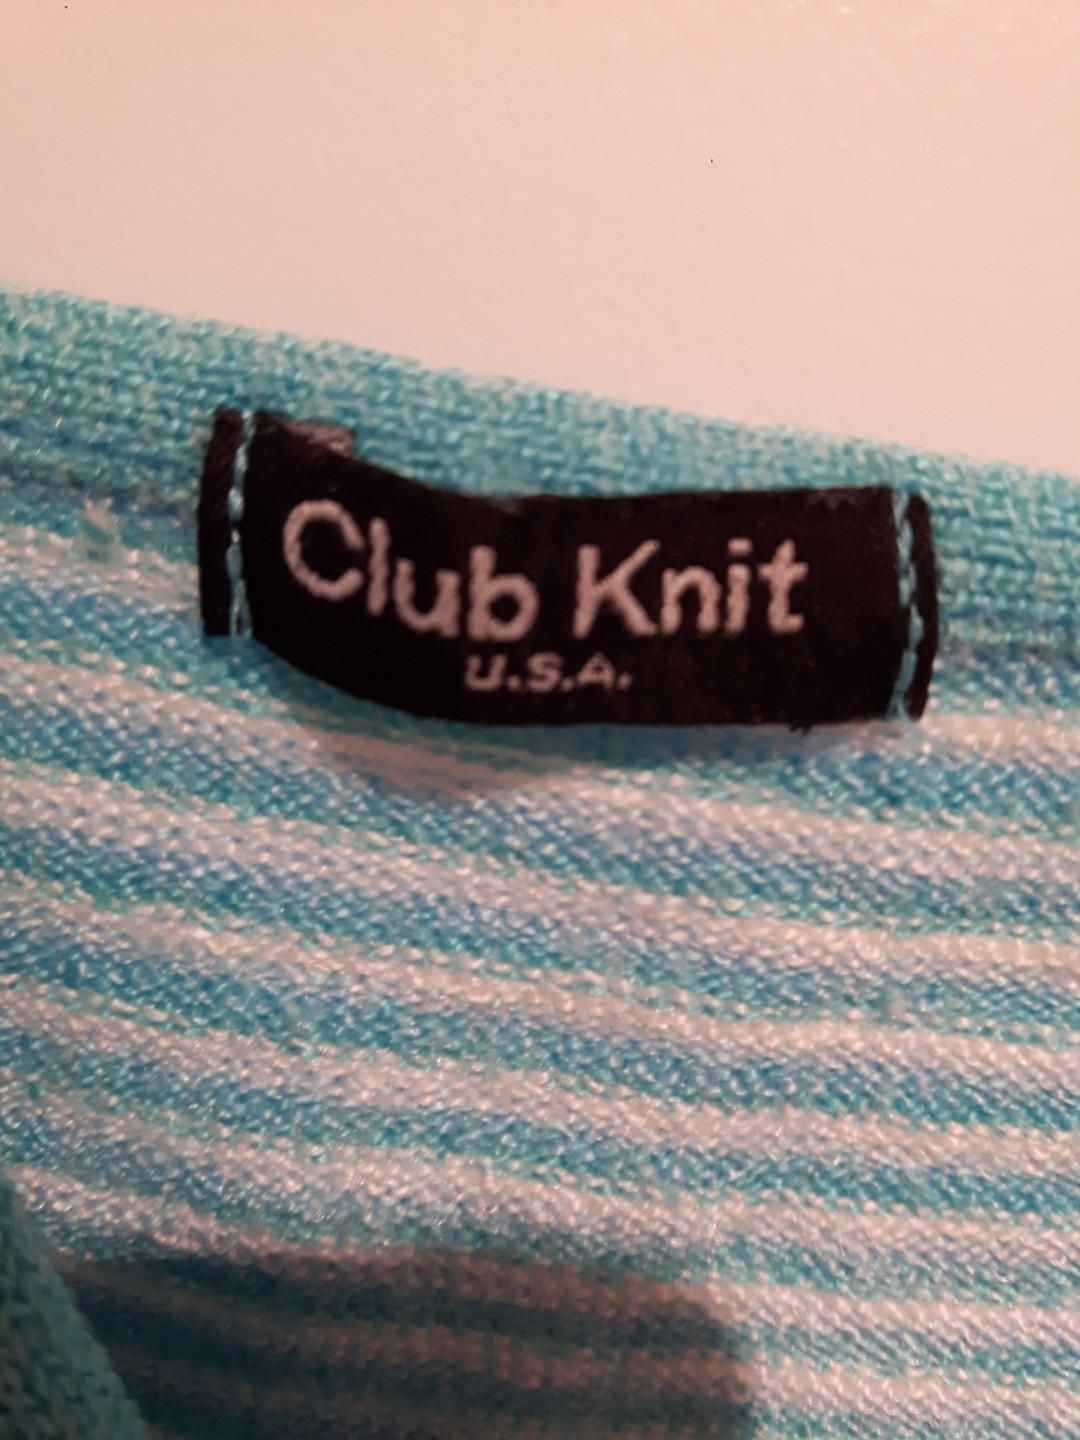 Club knit U.S.A Striped knit stop spaghetti strap Size Small